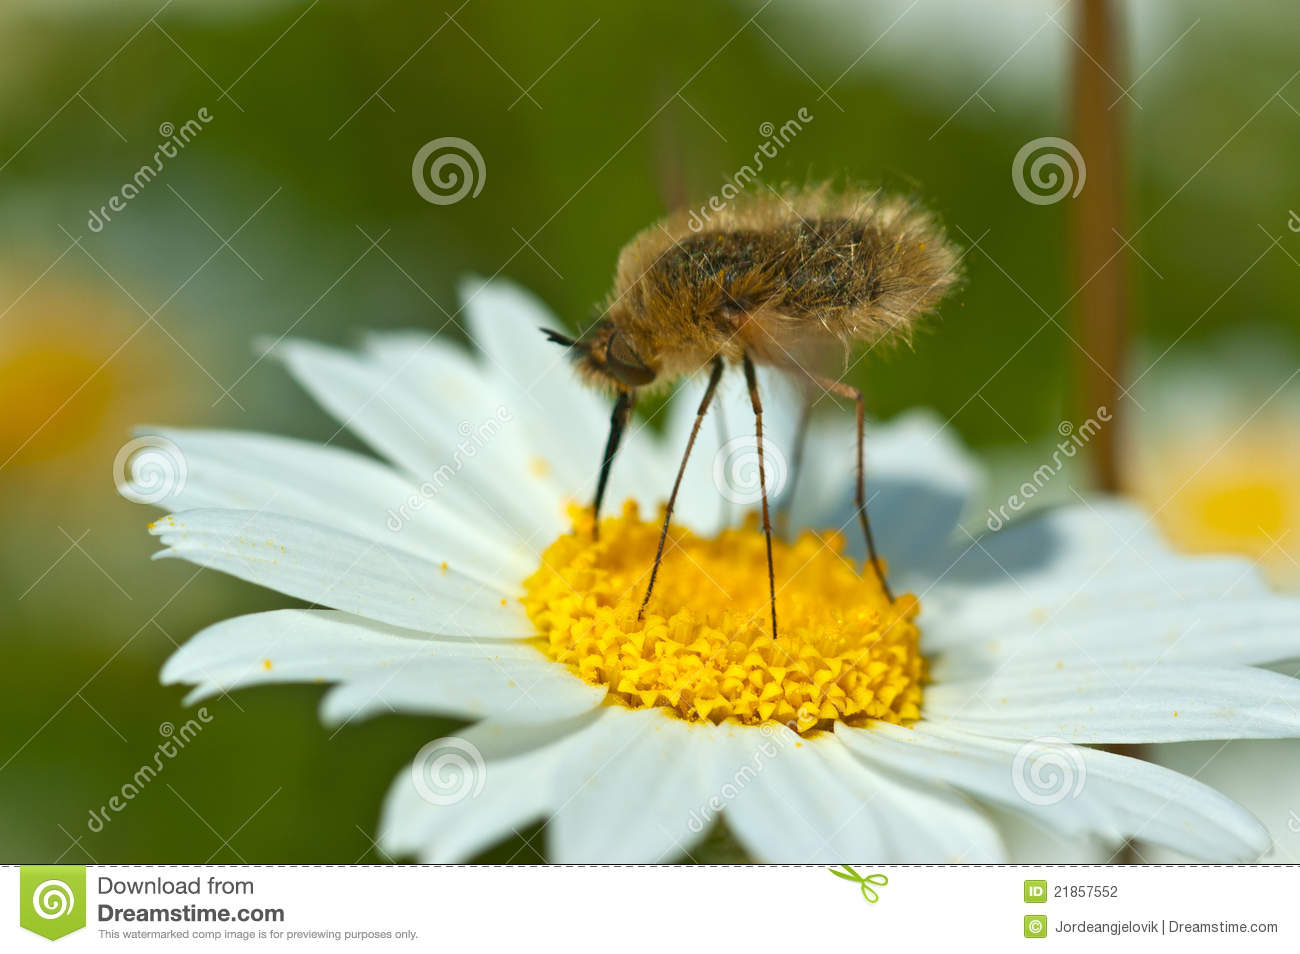 Bug and Chamomile Plant